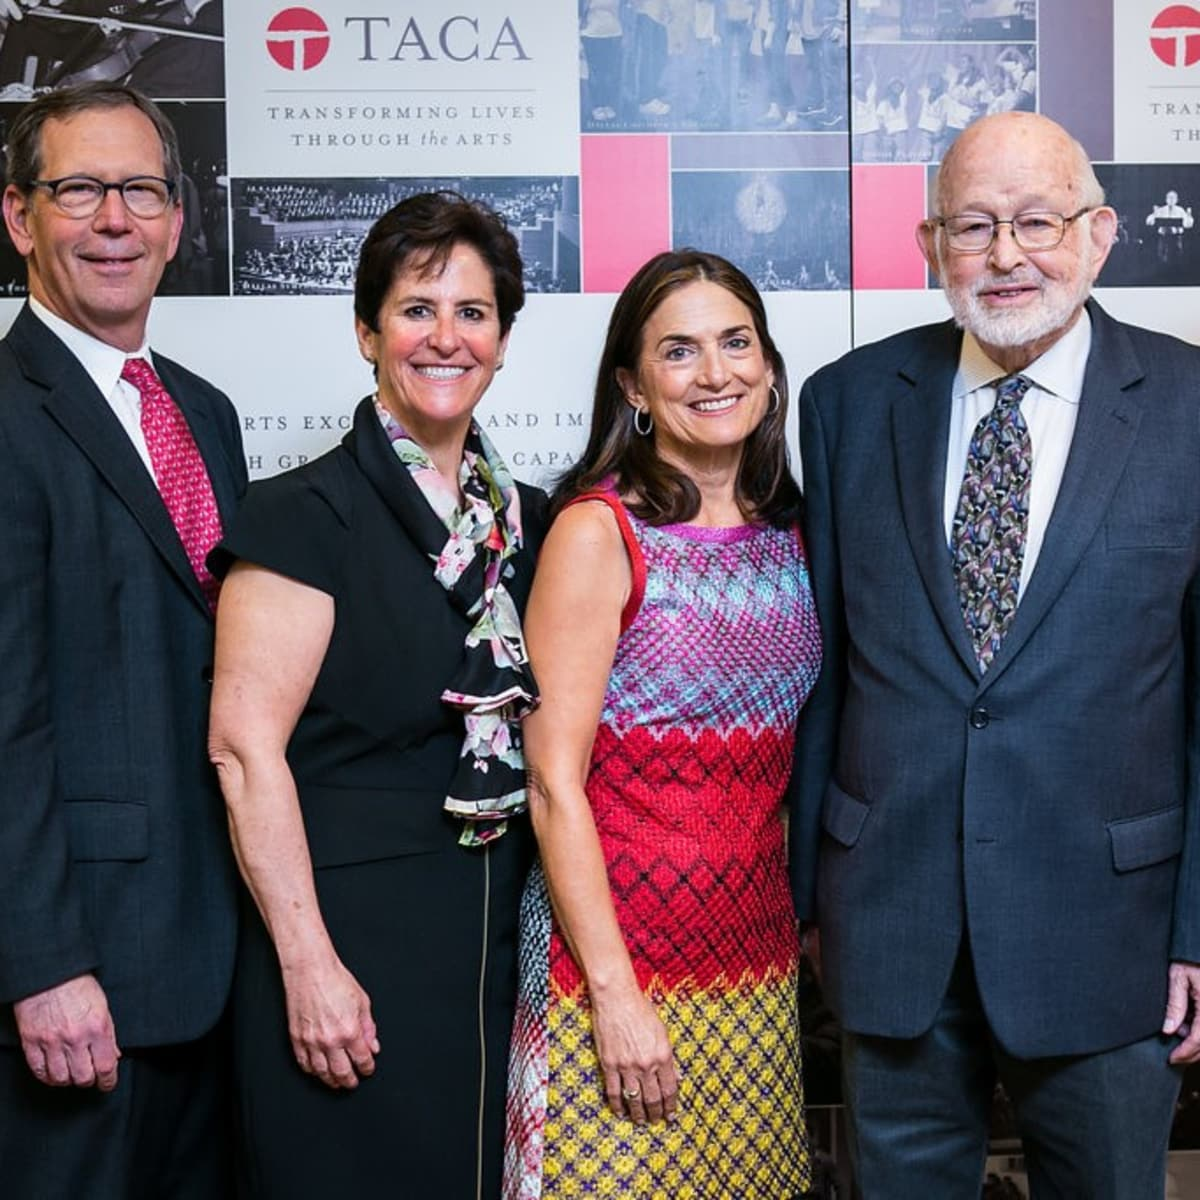 TACA silver cup luncheon 2018, Wolford McCue, Melinda Johnson, Julie Hersh, Don Stone, Michelle Thomas